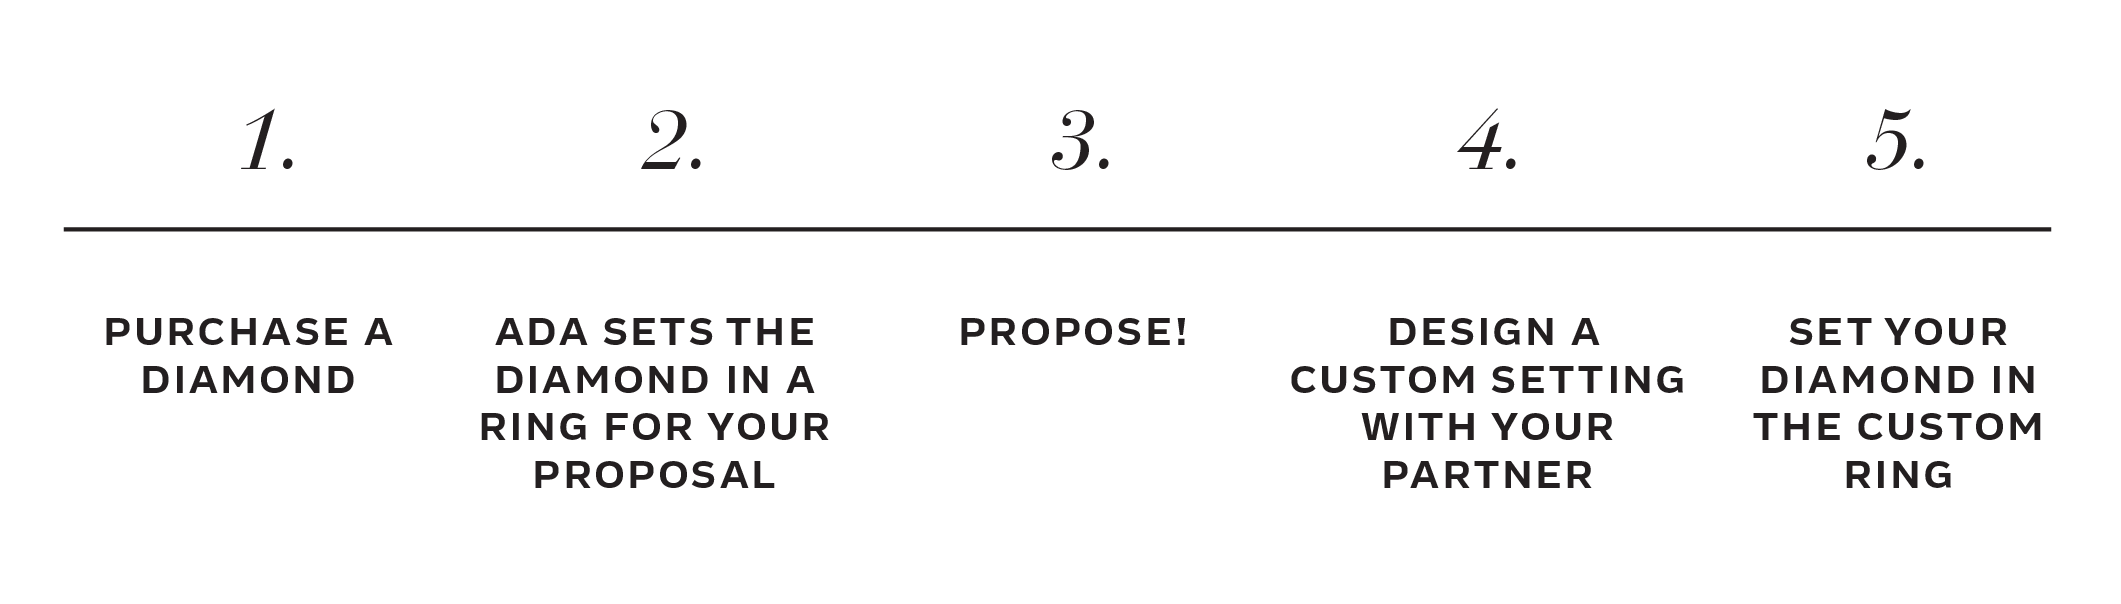 Proposal Setting Timeline Guide